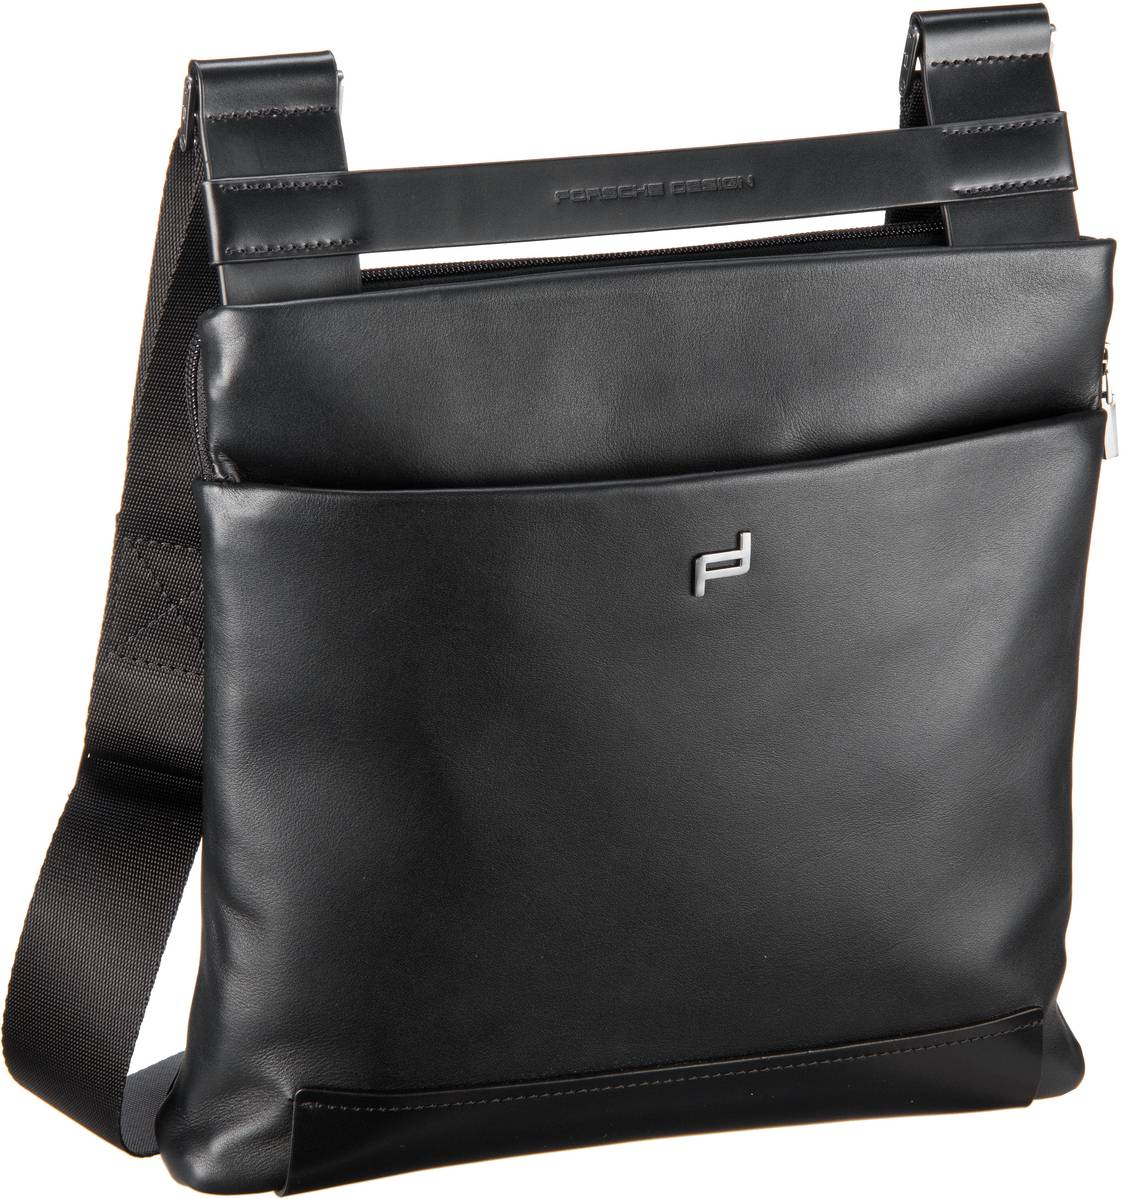 Umhängetasche Shyrt 2.0 Leather ShoulderBag XSVZ Black